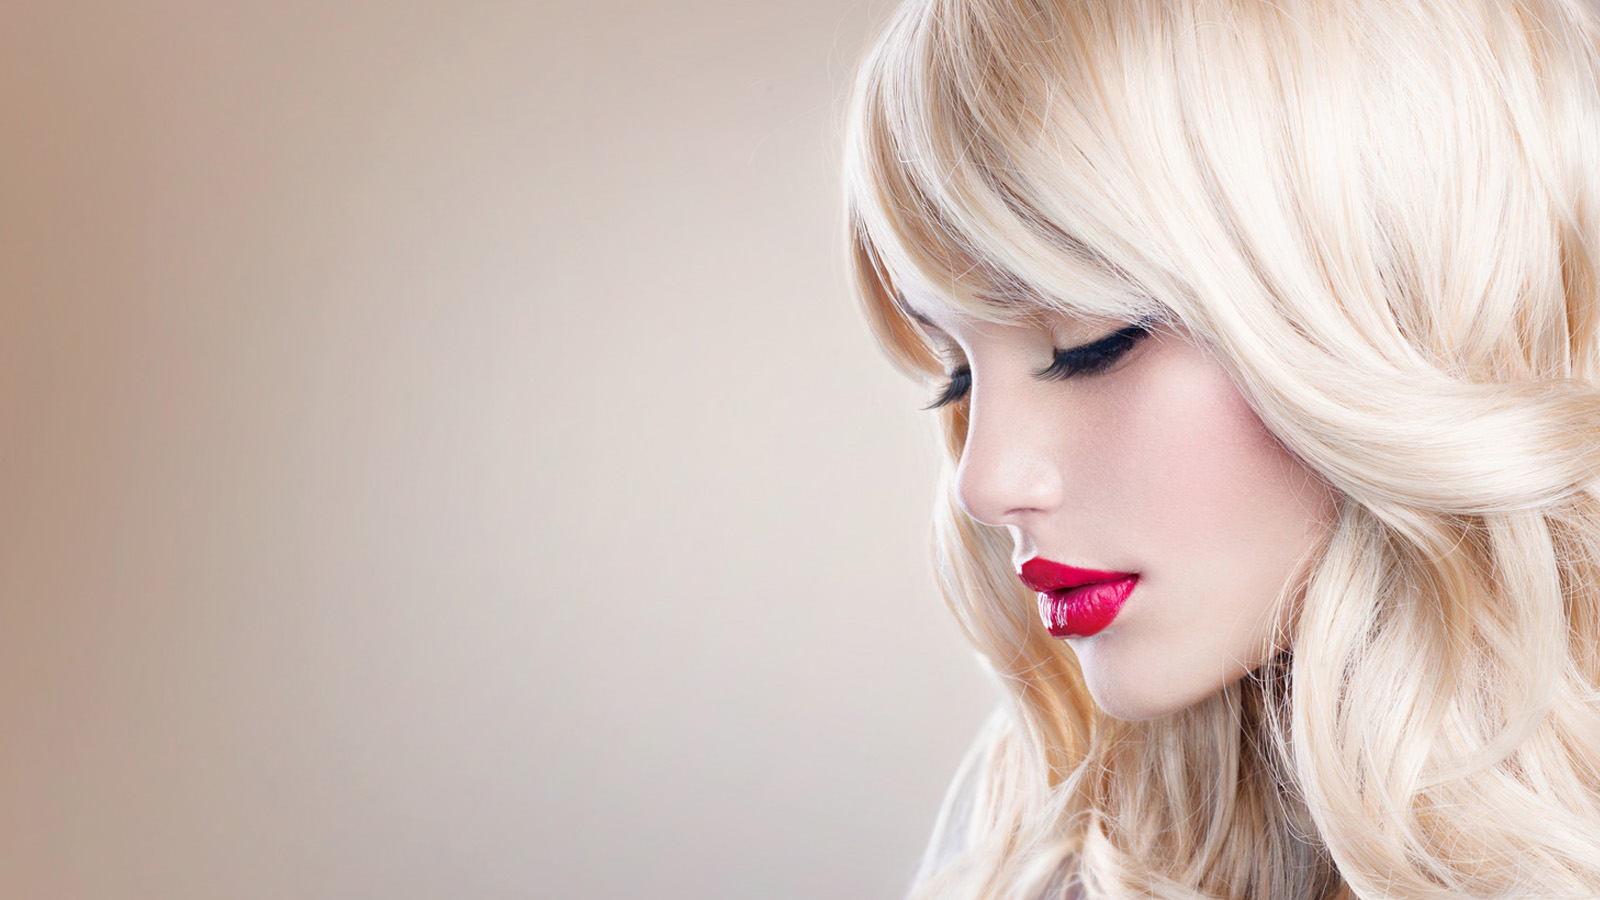 hair design backgrounds - photo #32